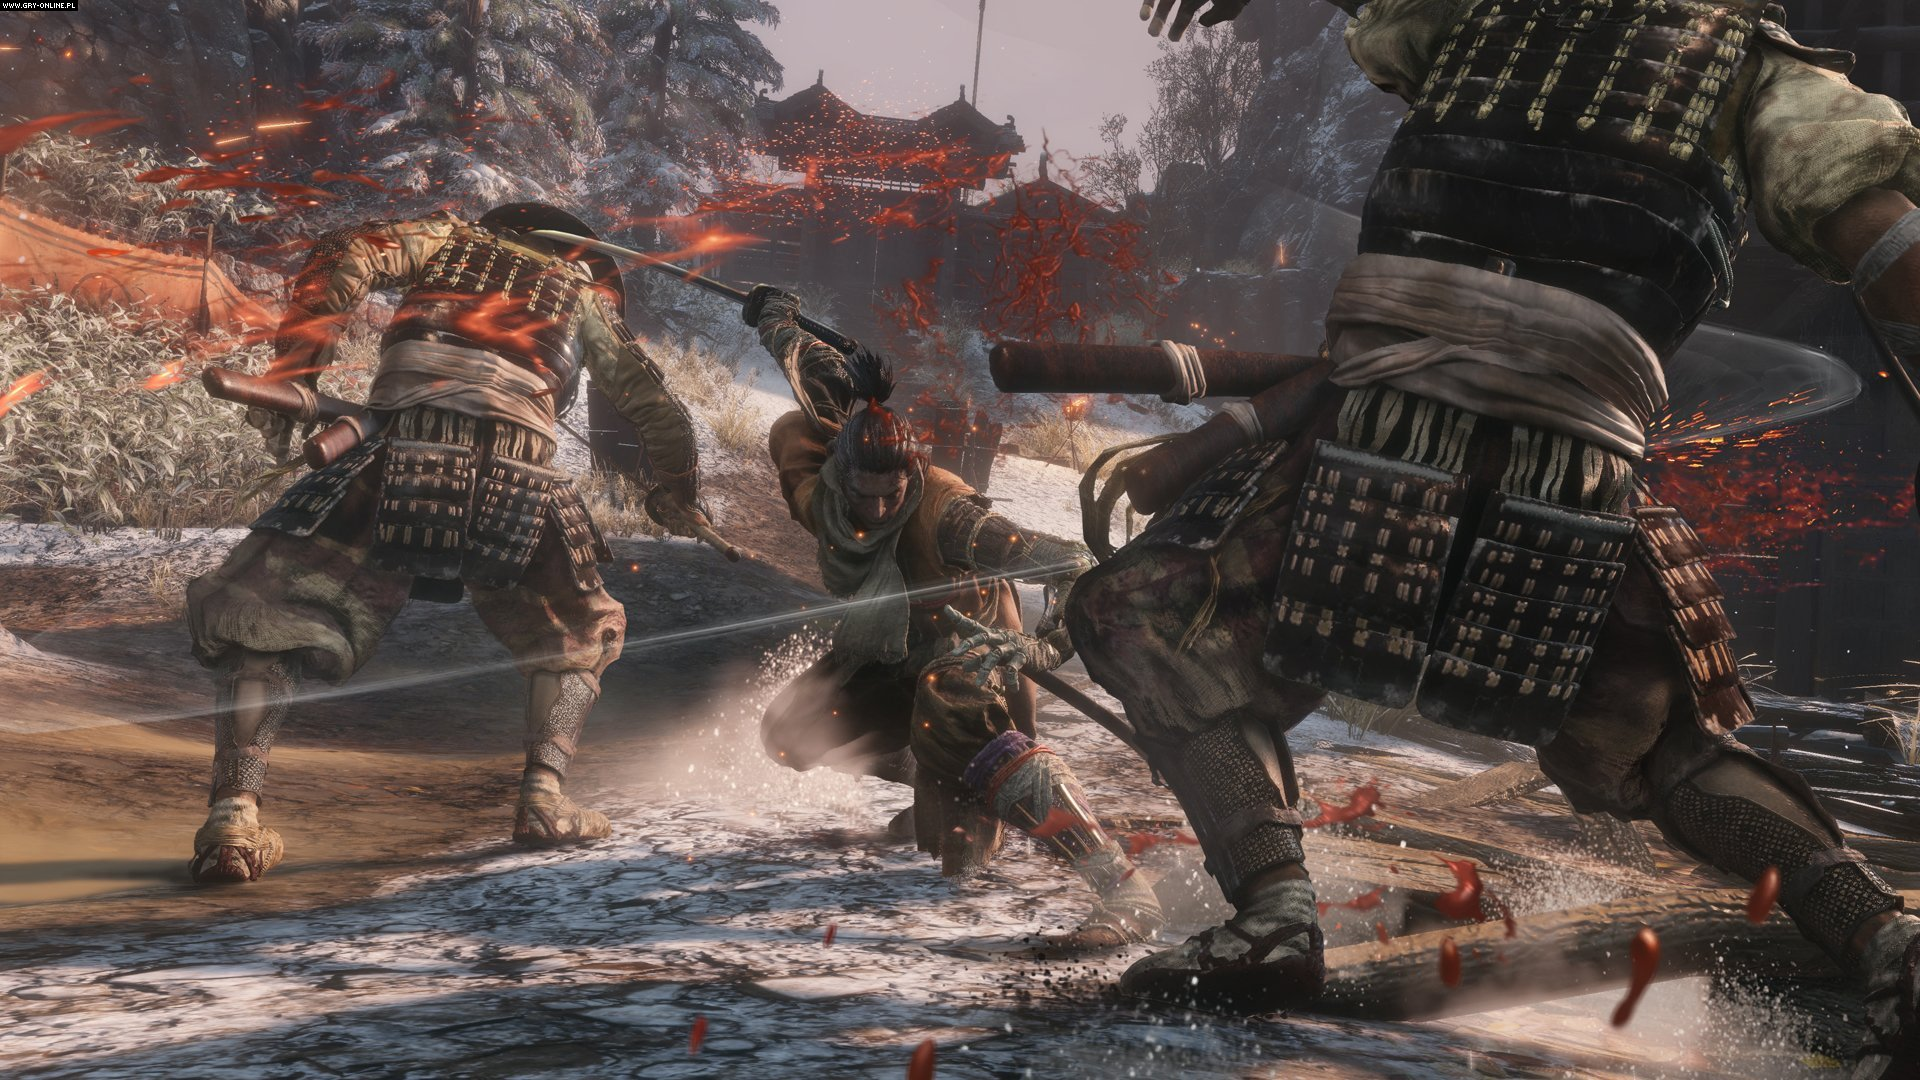 Sekiro: Shadows Die Twice PC, PS4, XONE Gry Screen 1/29, FromSoftware, Activision Blizzard